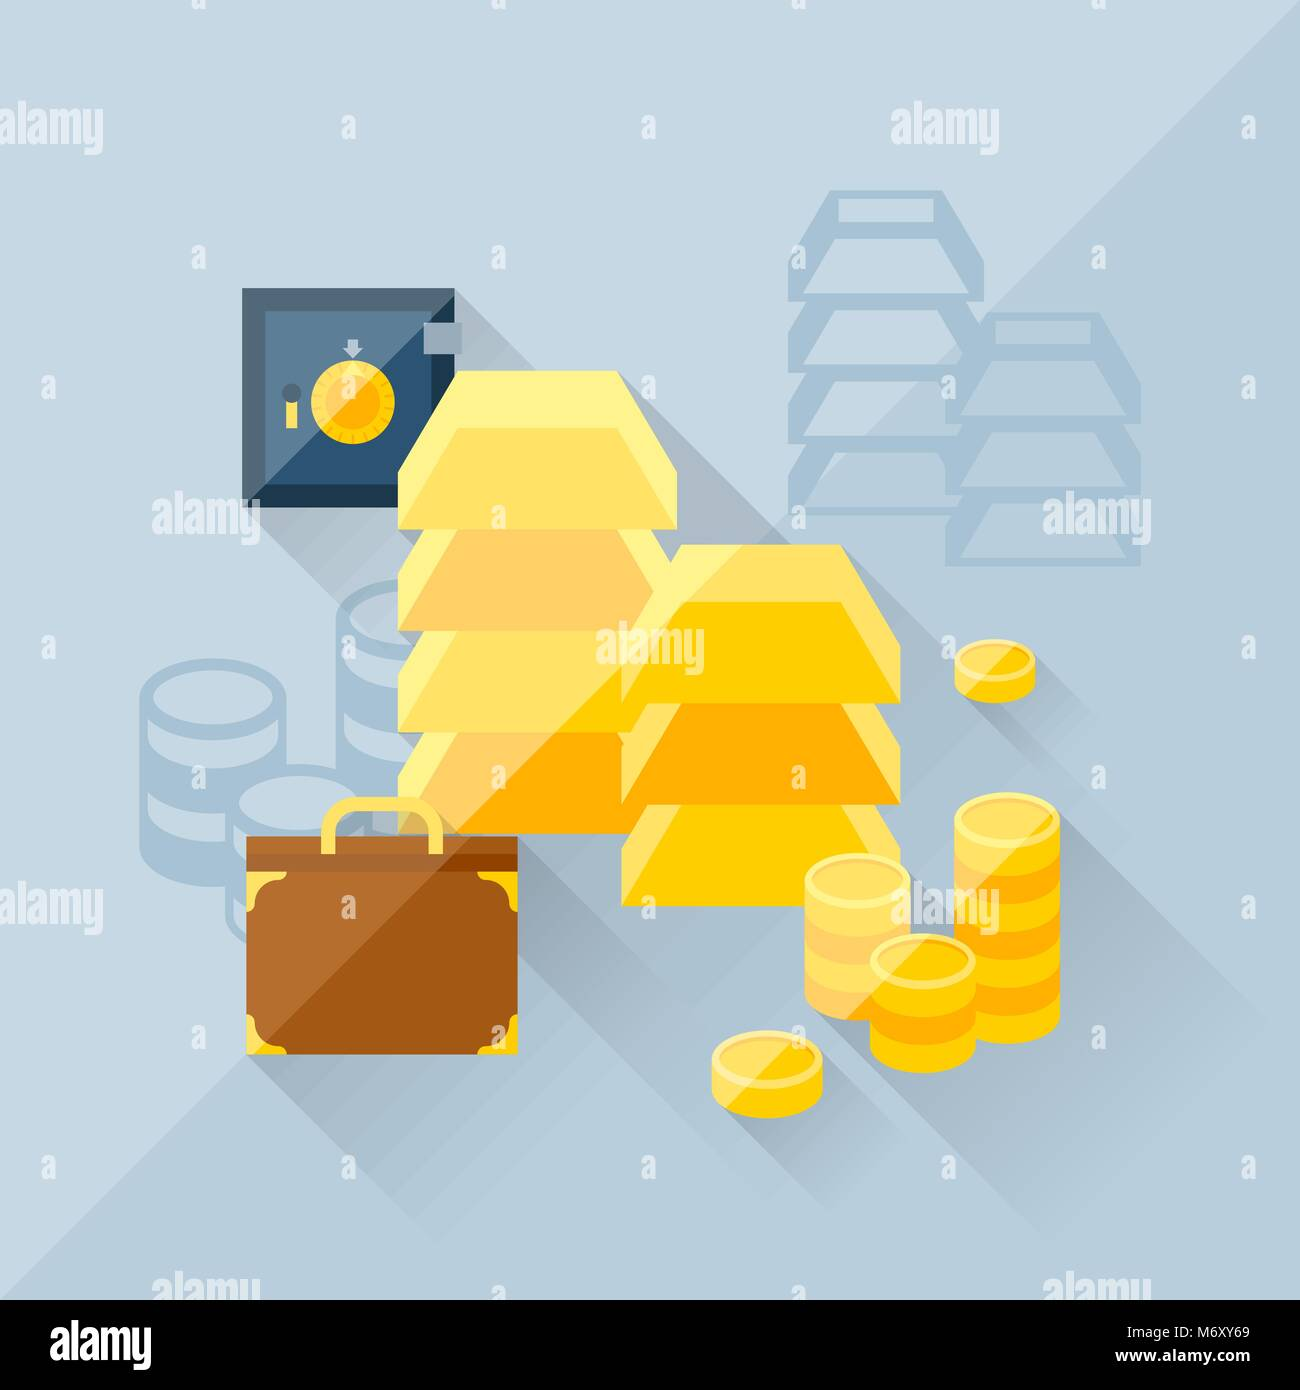 Illustration concept of precious metals in flat design style - Stock Image